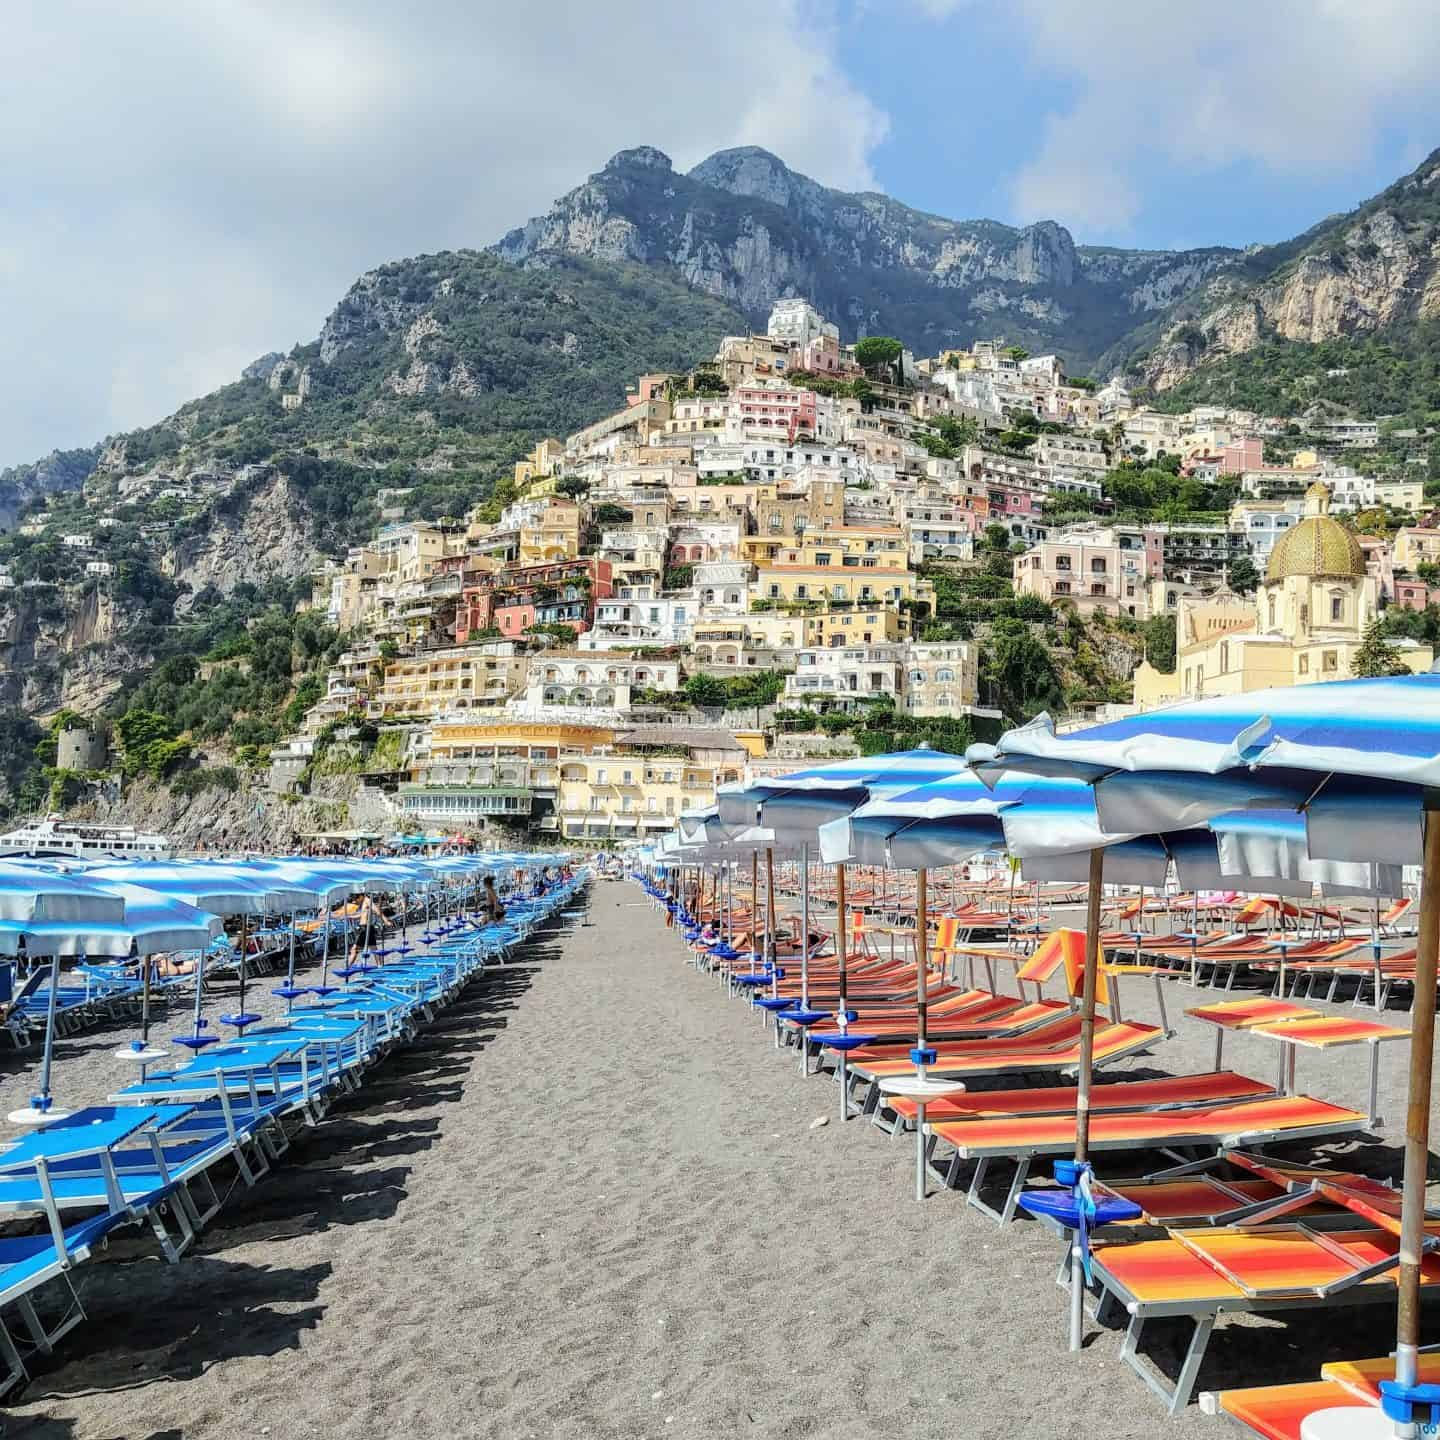 Positano beach lined with beach chairs and umbrellas with mountain view